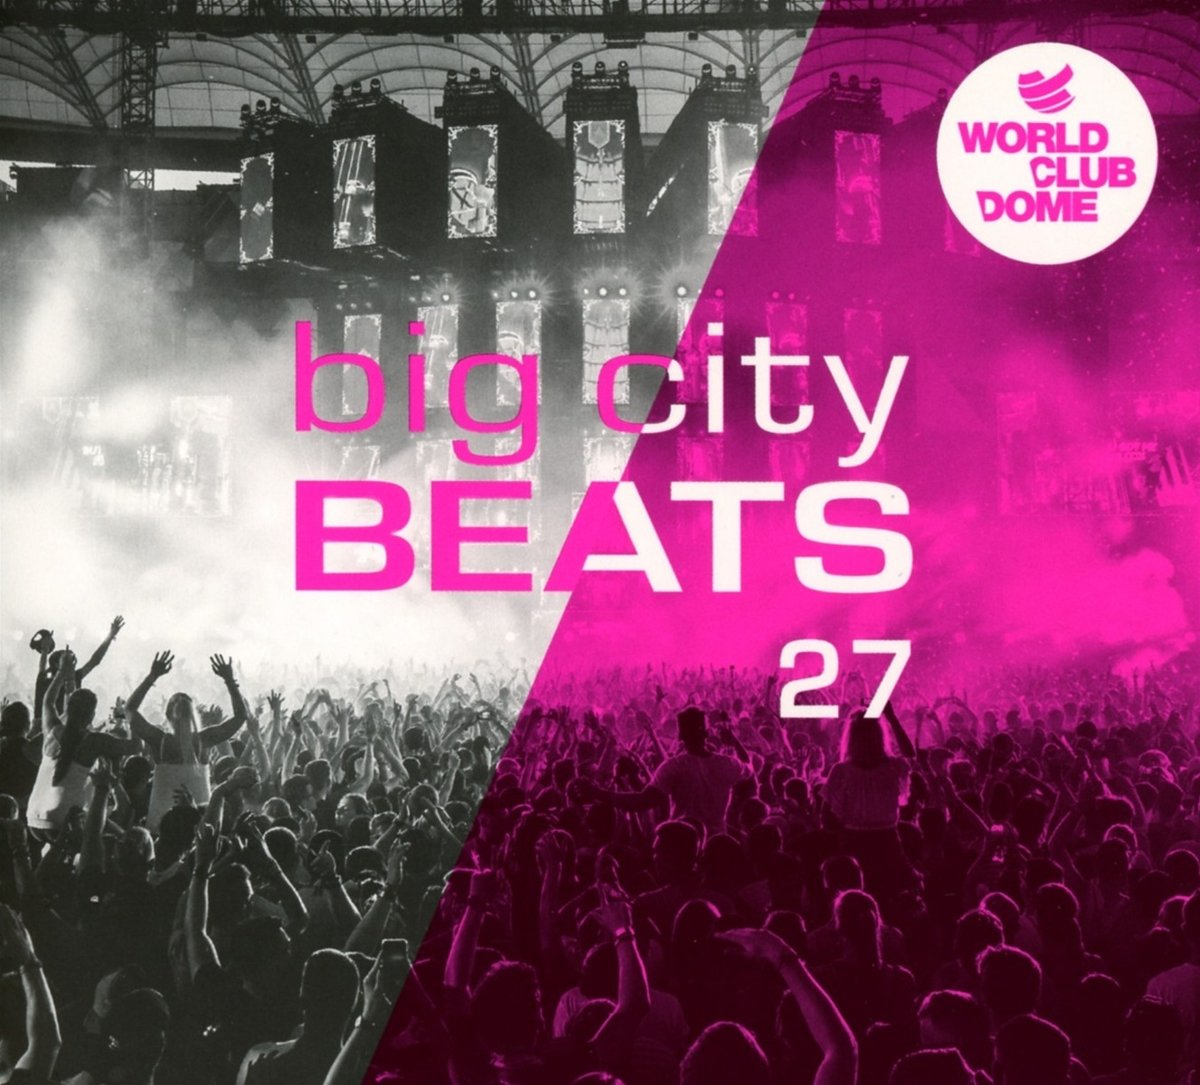 VA - Big City Beats 27 World Club Dome - 3CD - FLAC - 2017 - VOLDiES Download